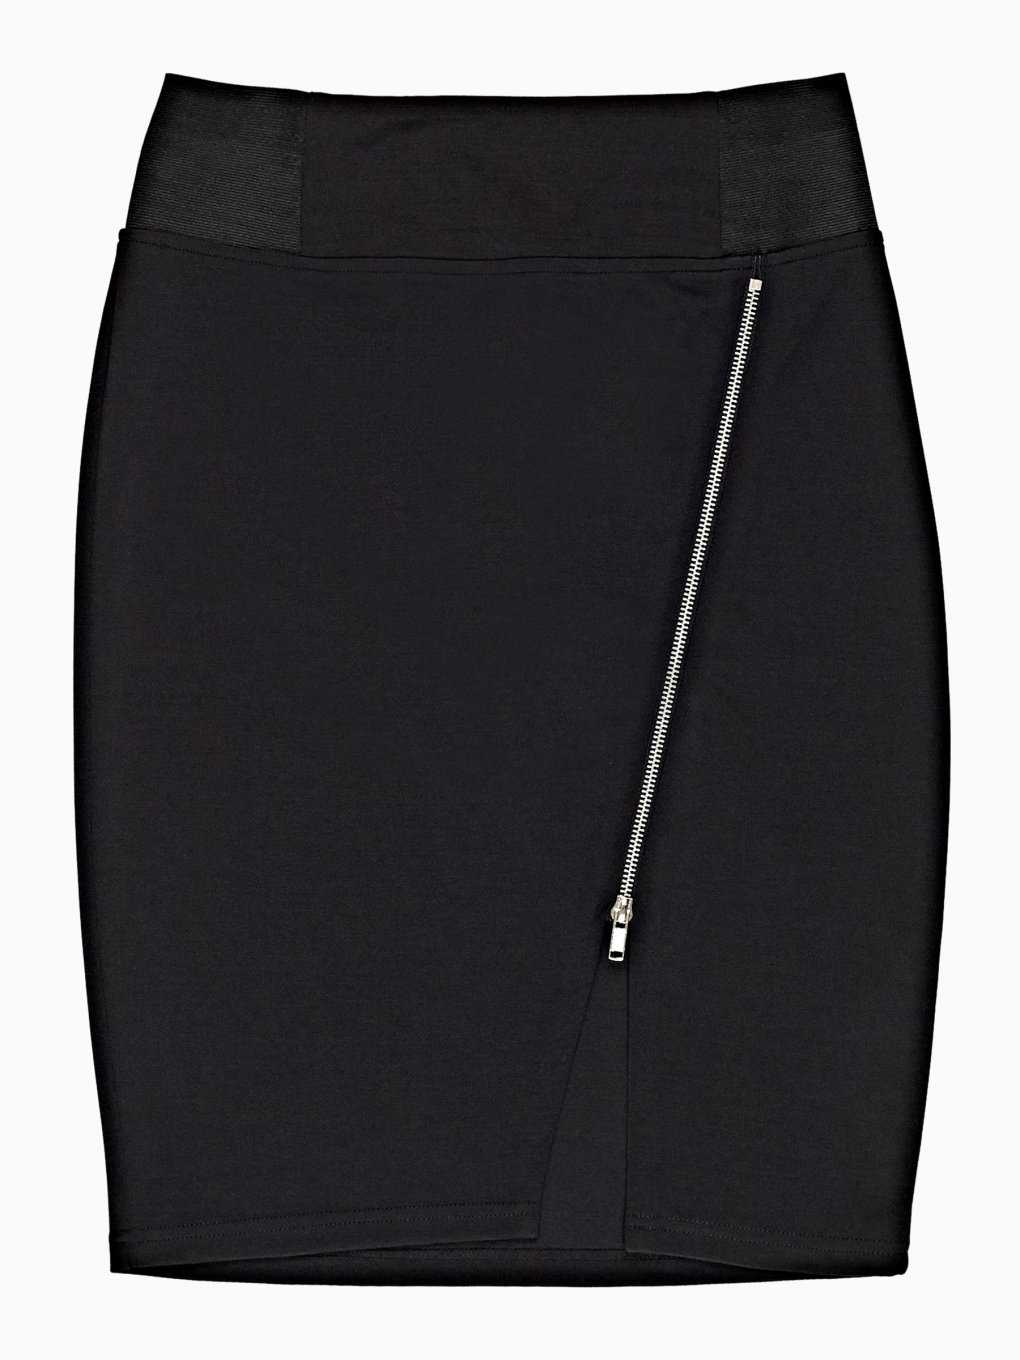 Bodyon skirt with asymmetrical zipper